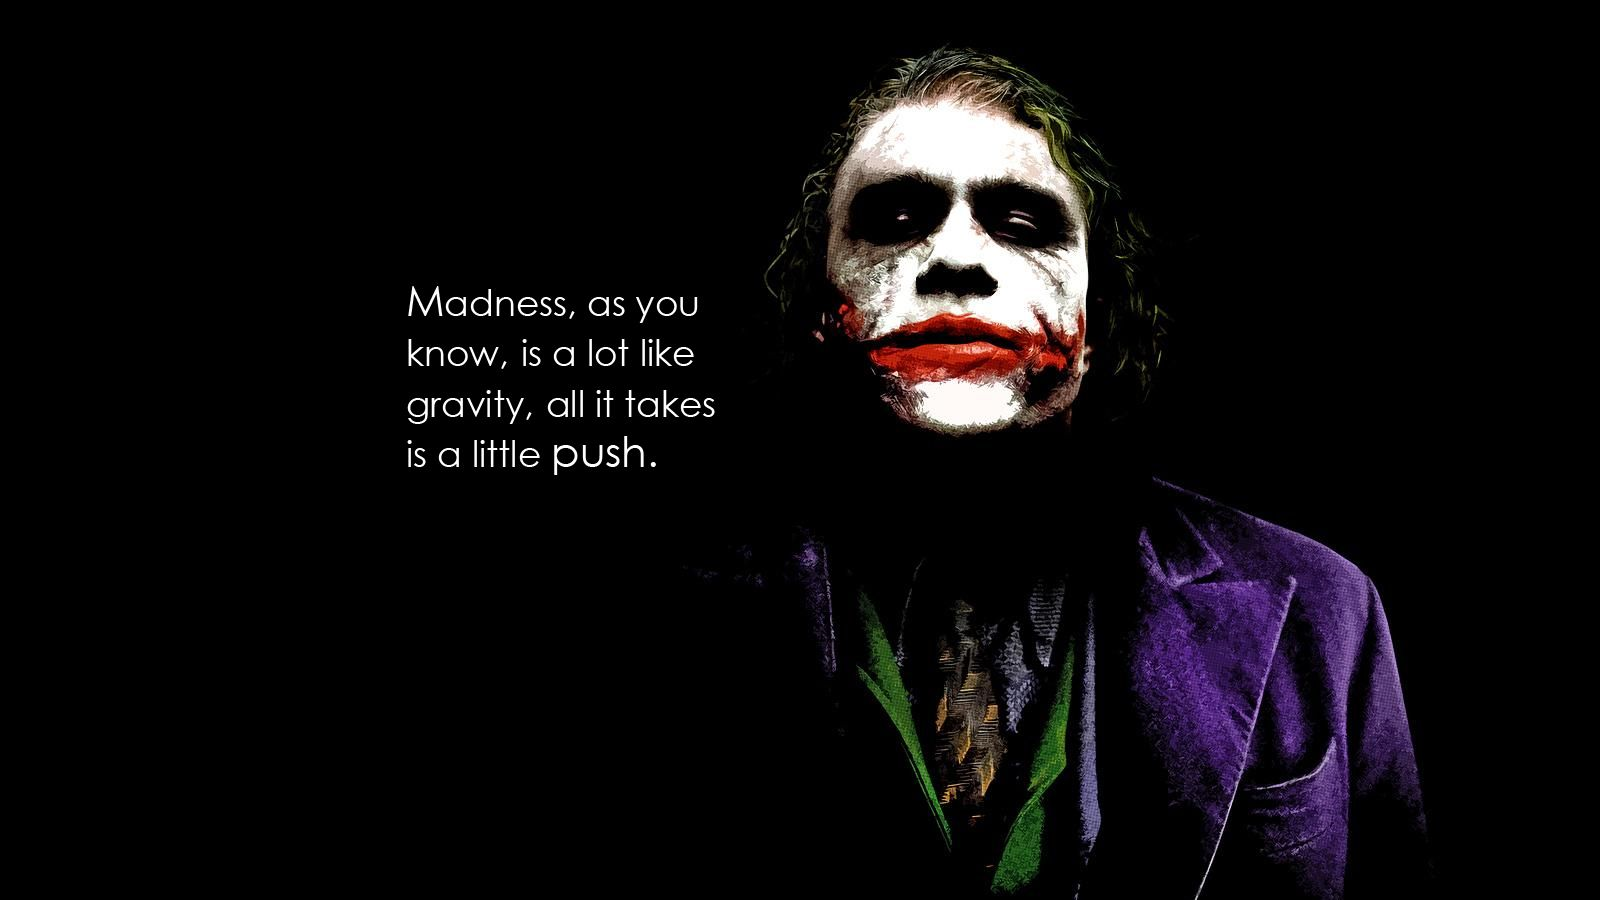 dark-knight-joker-hd-wallpaper